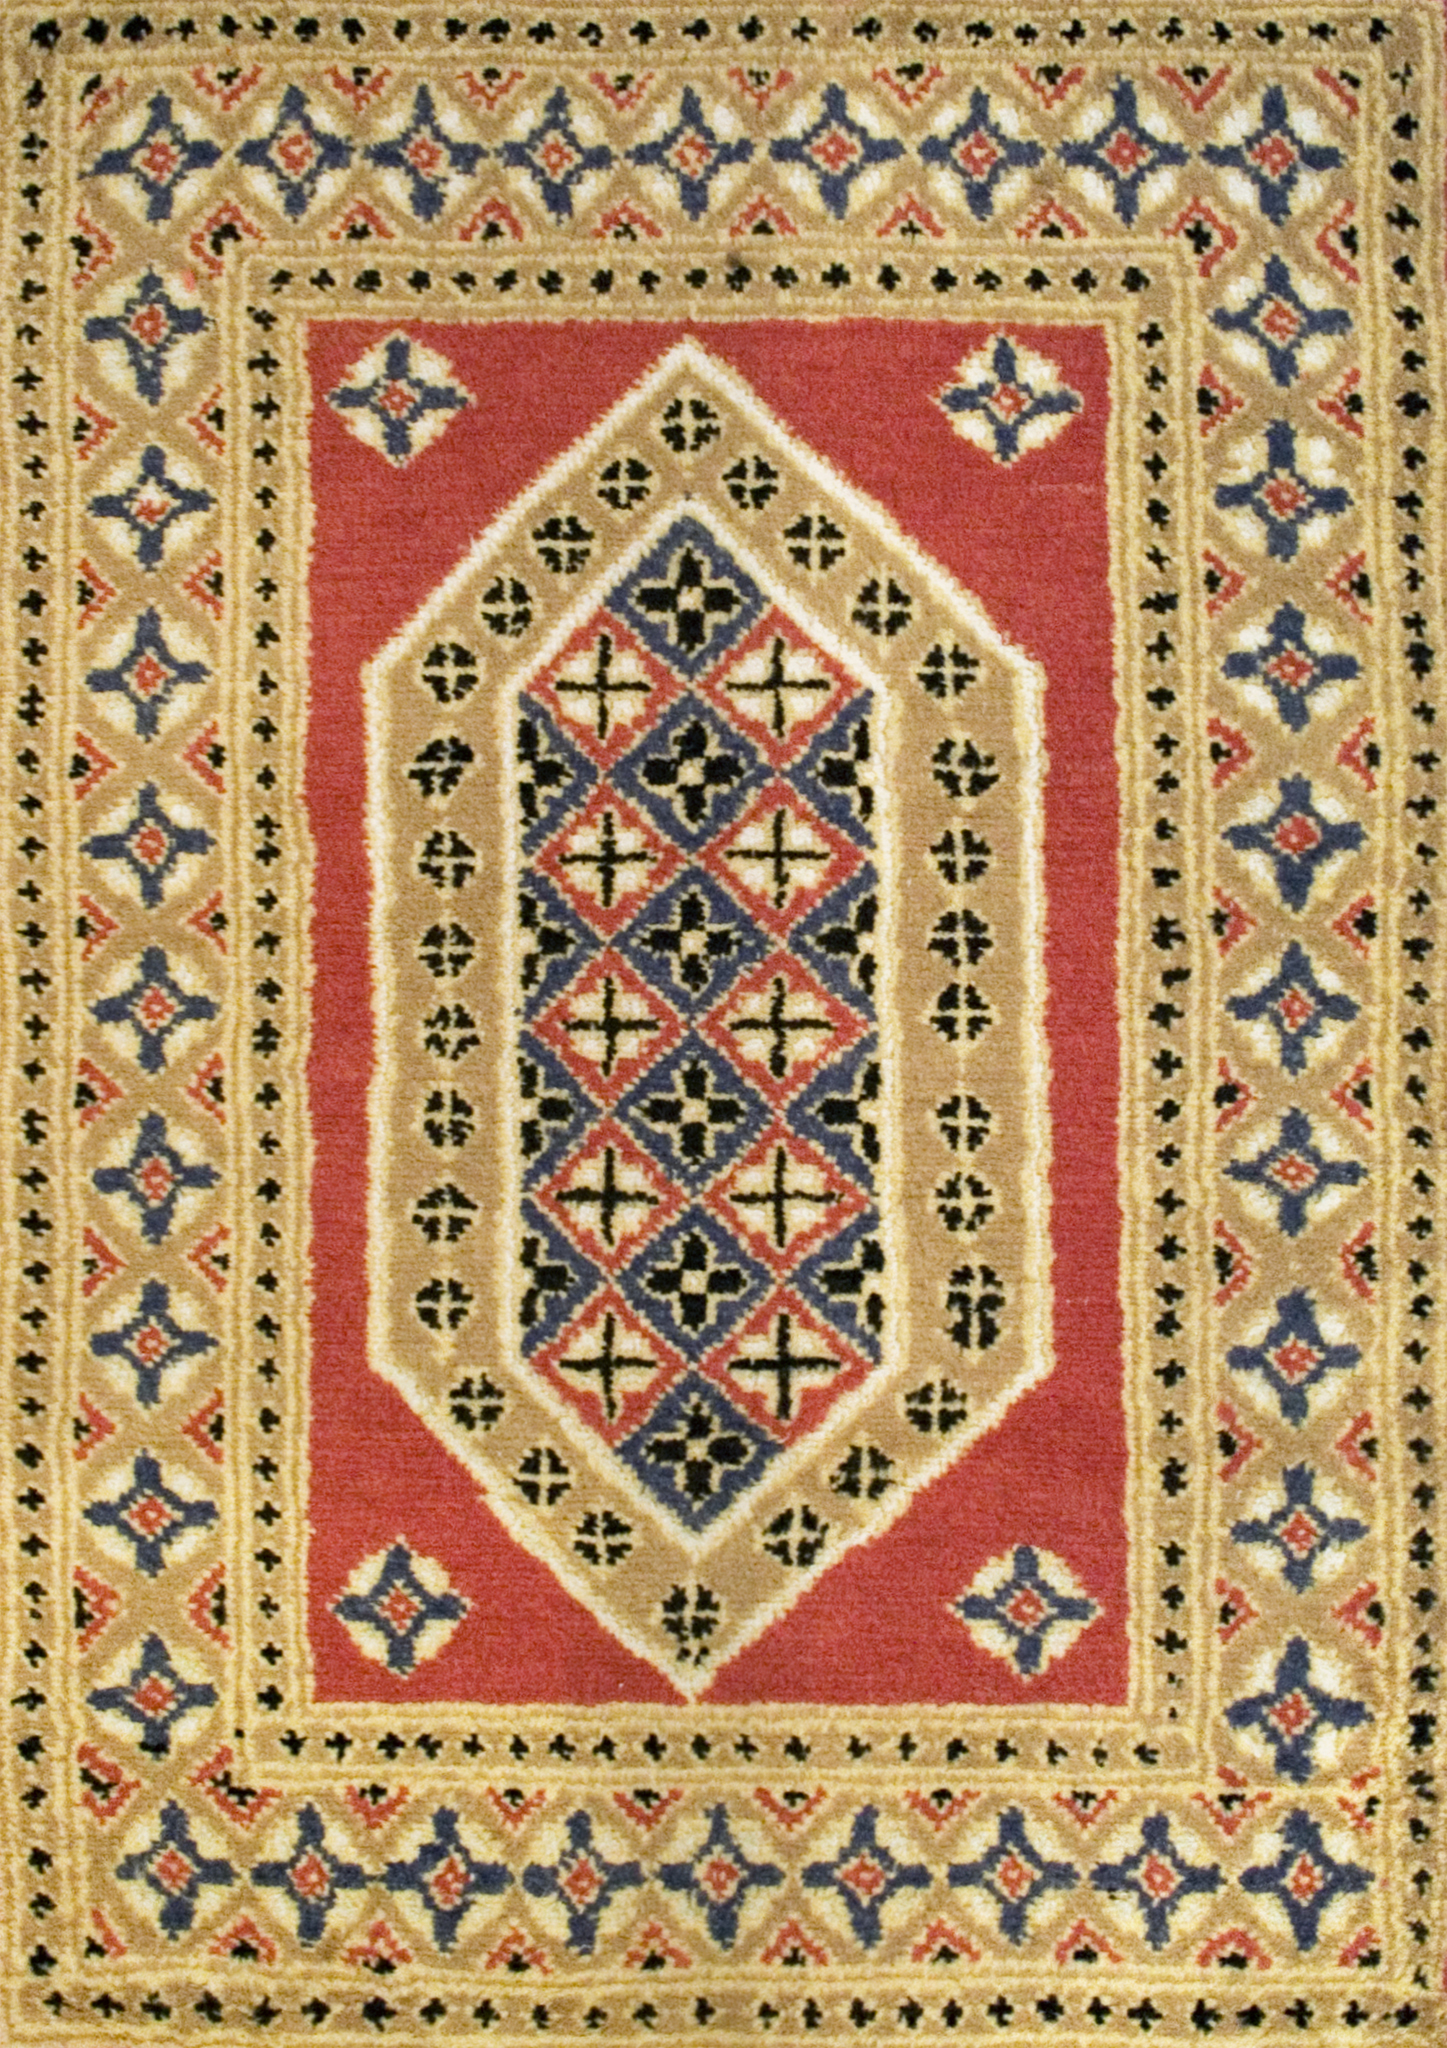 Cross Ornate Rug.jpg